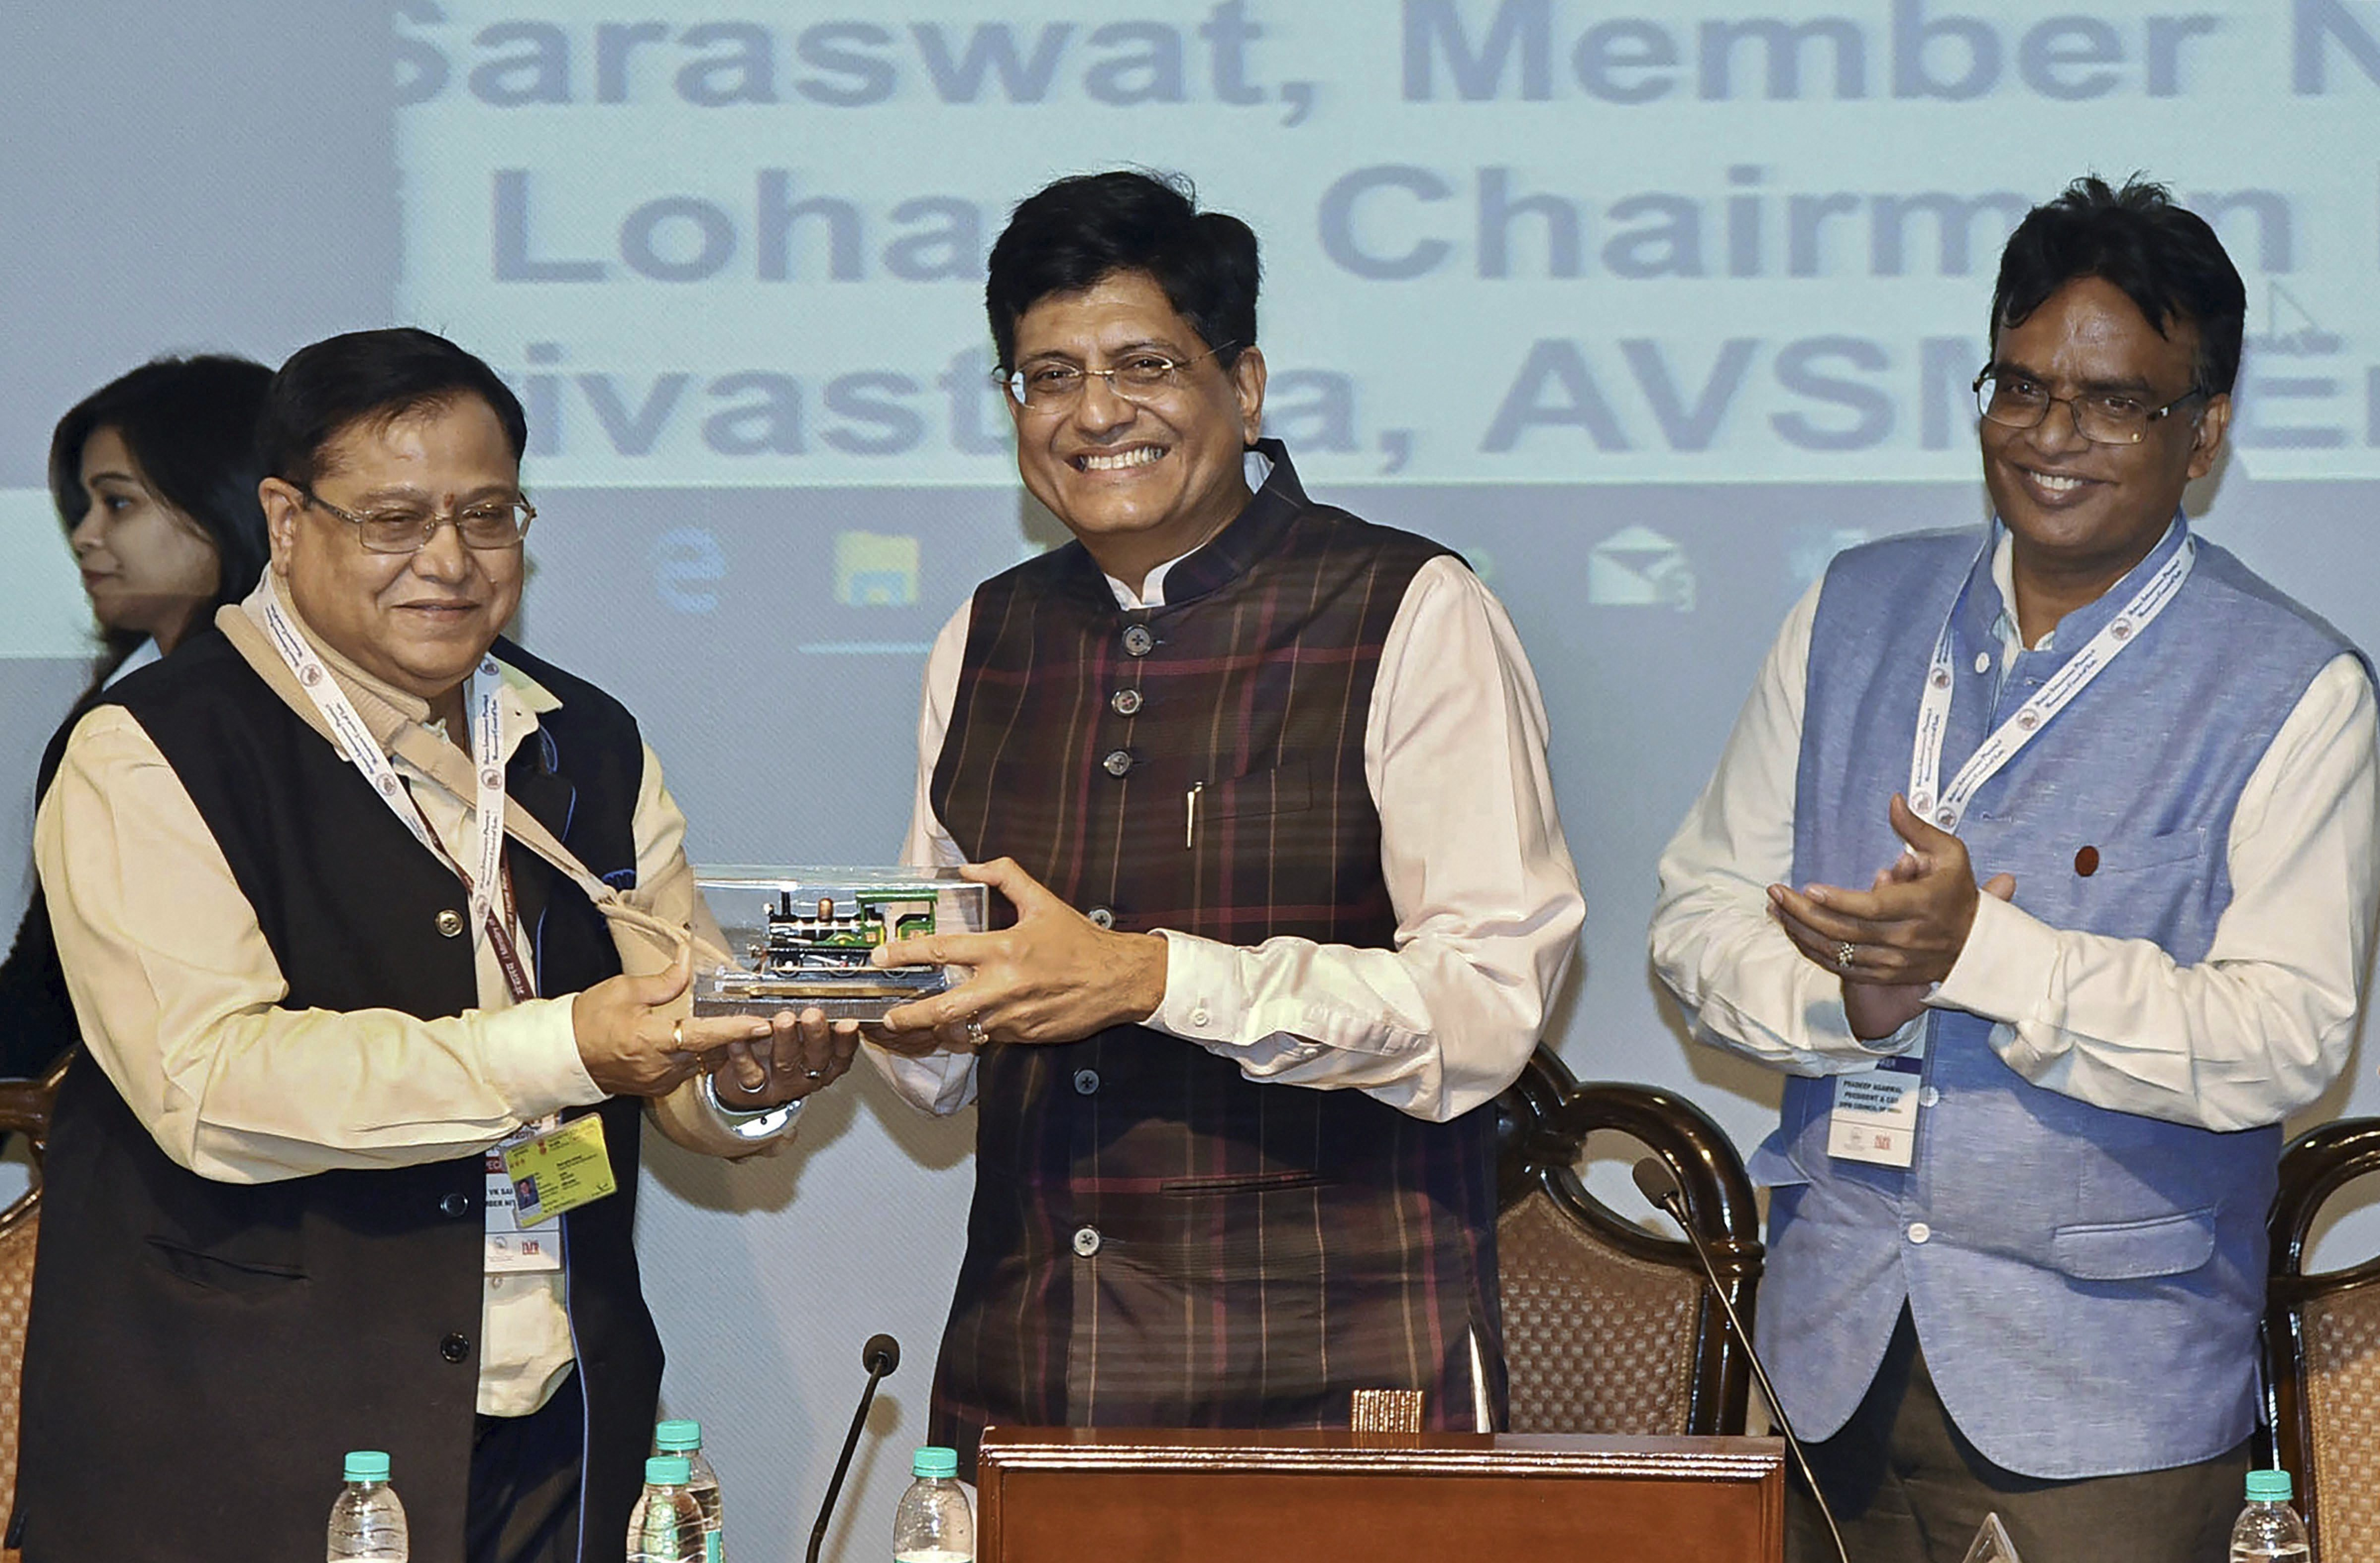 Union Minister for Railways and Coal Piyush Goyal is presented a memento by the Member, NITI Aayog V.K. Saraswat, at the inaugural function of the International Conference on Technological Advancements in Railways & Metro Projects, organised by DIPM Council (India), in New Delhi - PTI